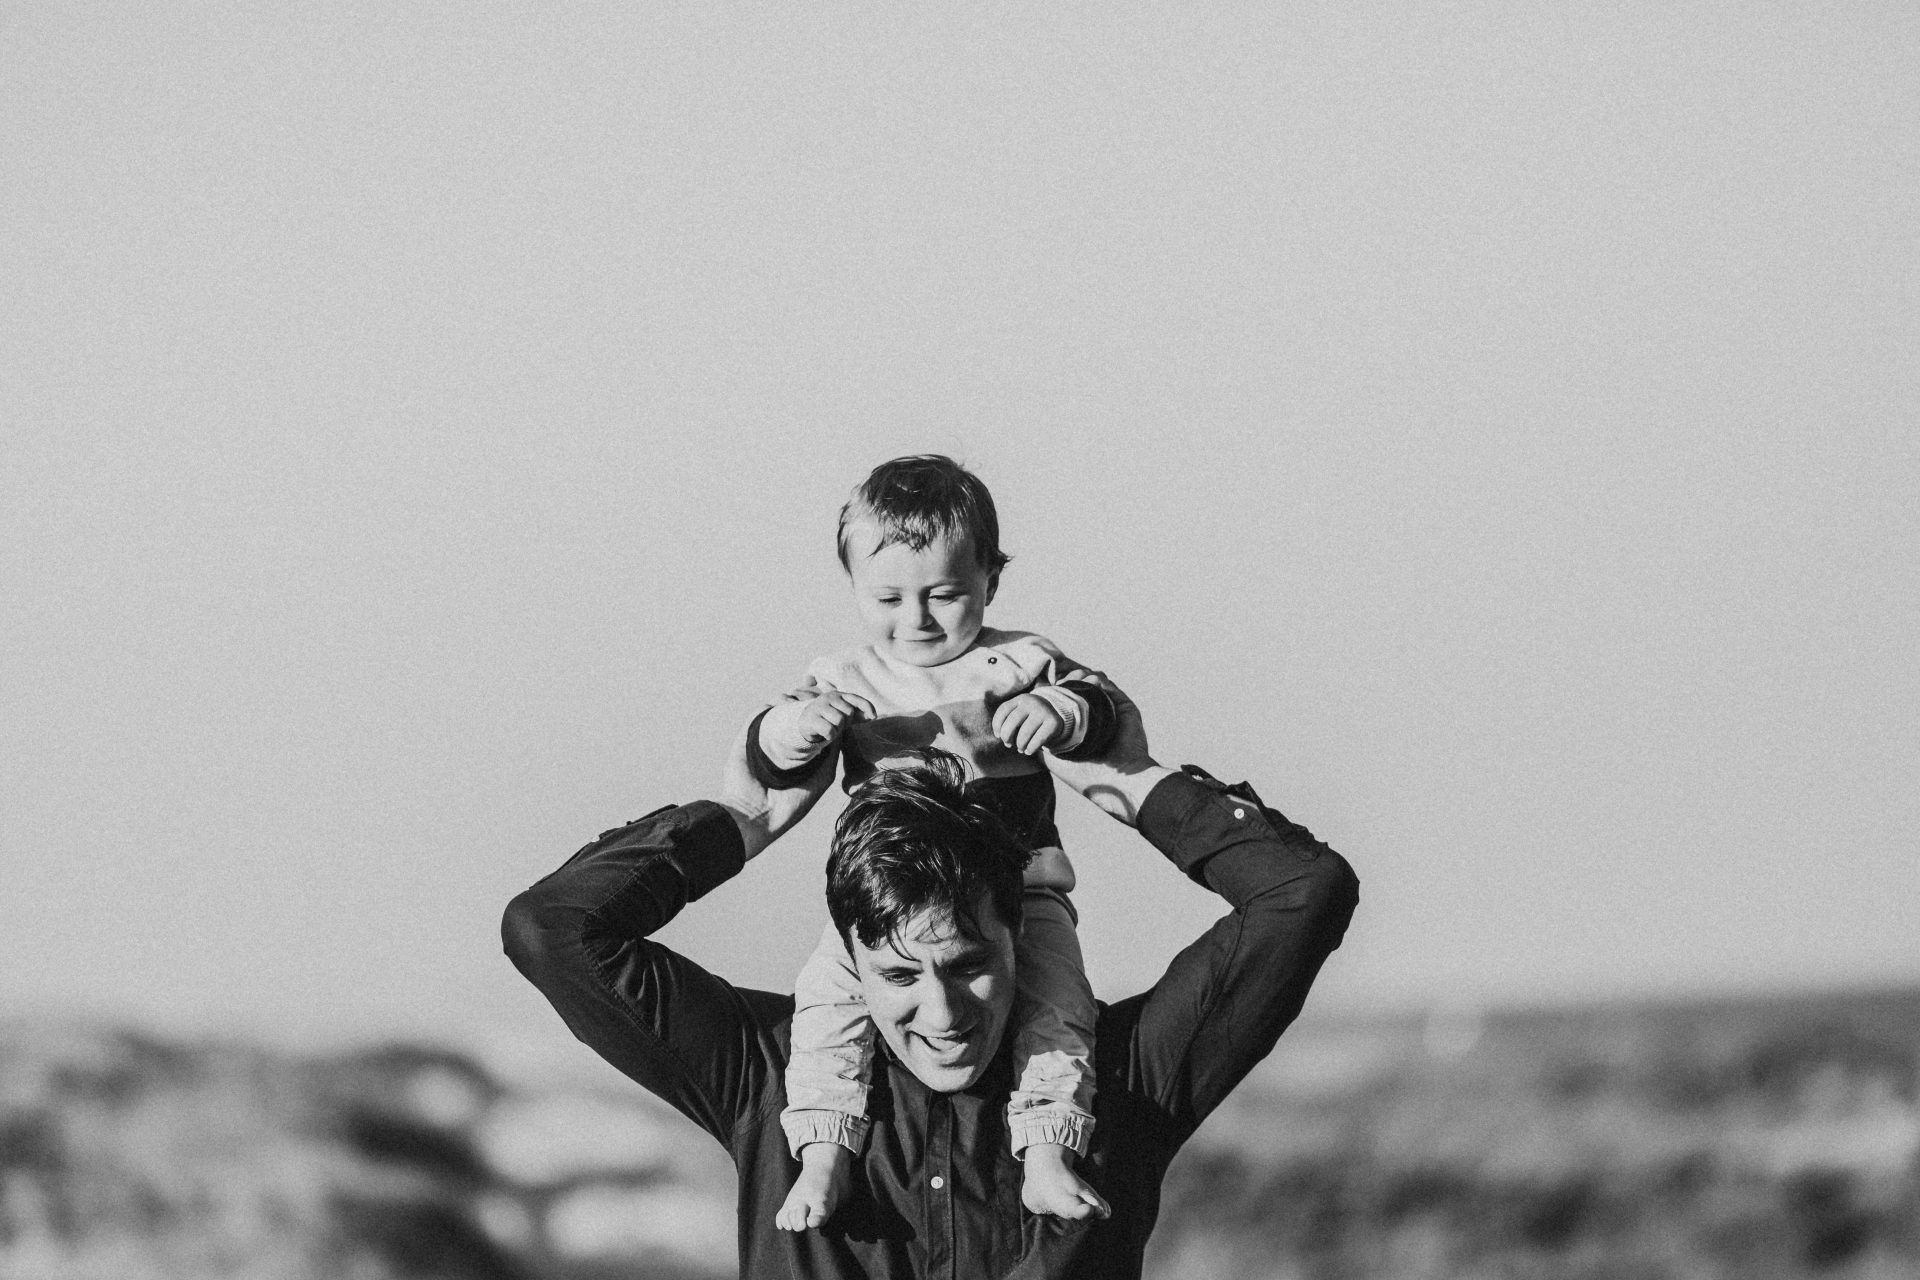 Black and white image of toddler on his father's shoulders